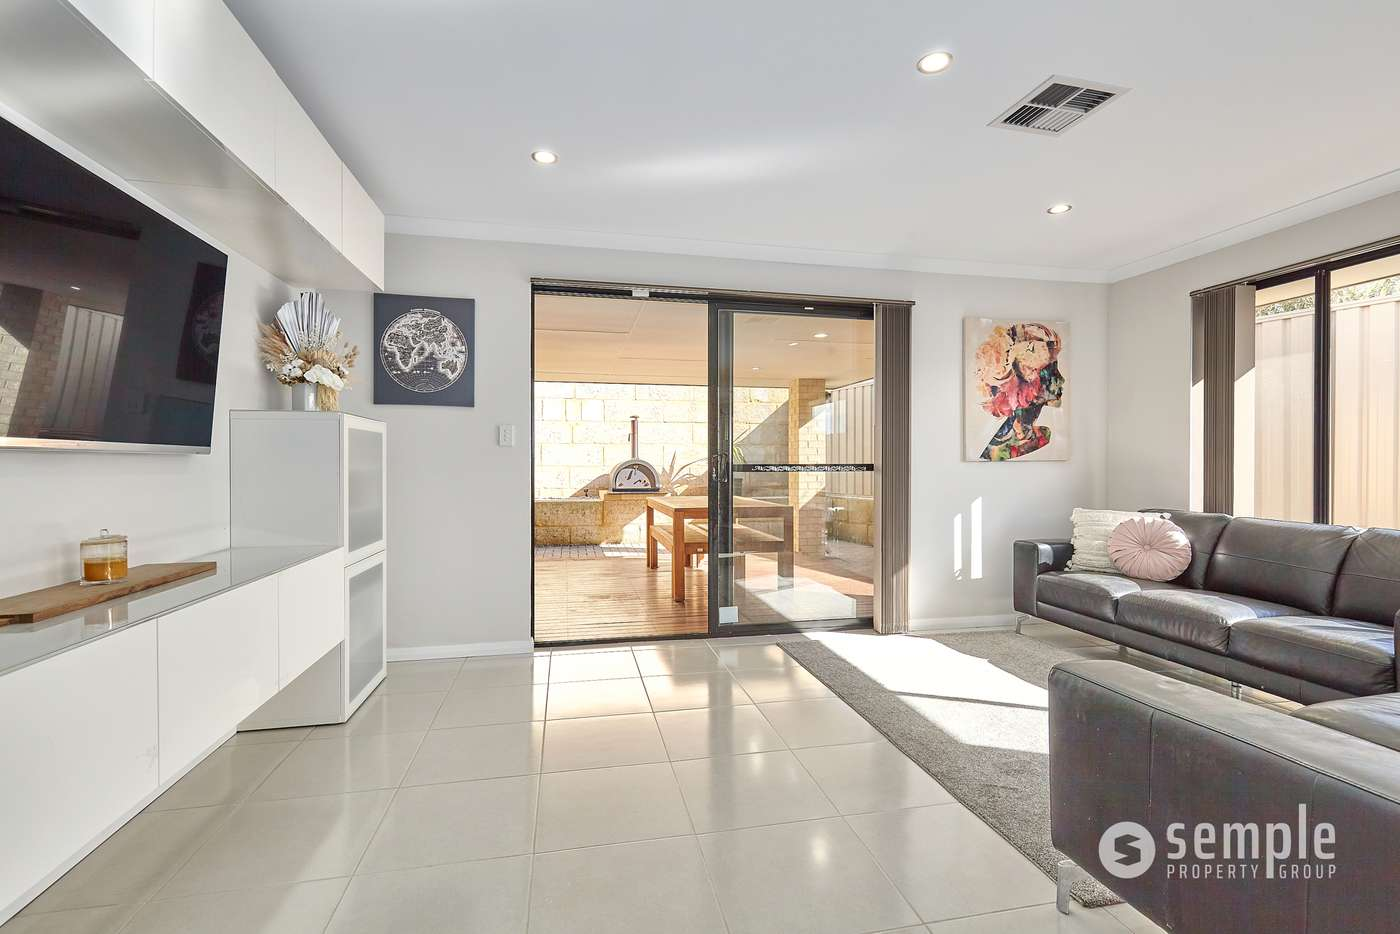 Fifth view of Homely house listing, 2 Desertpea Road, Beeliar WA 6164